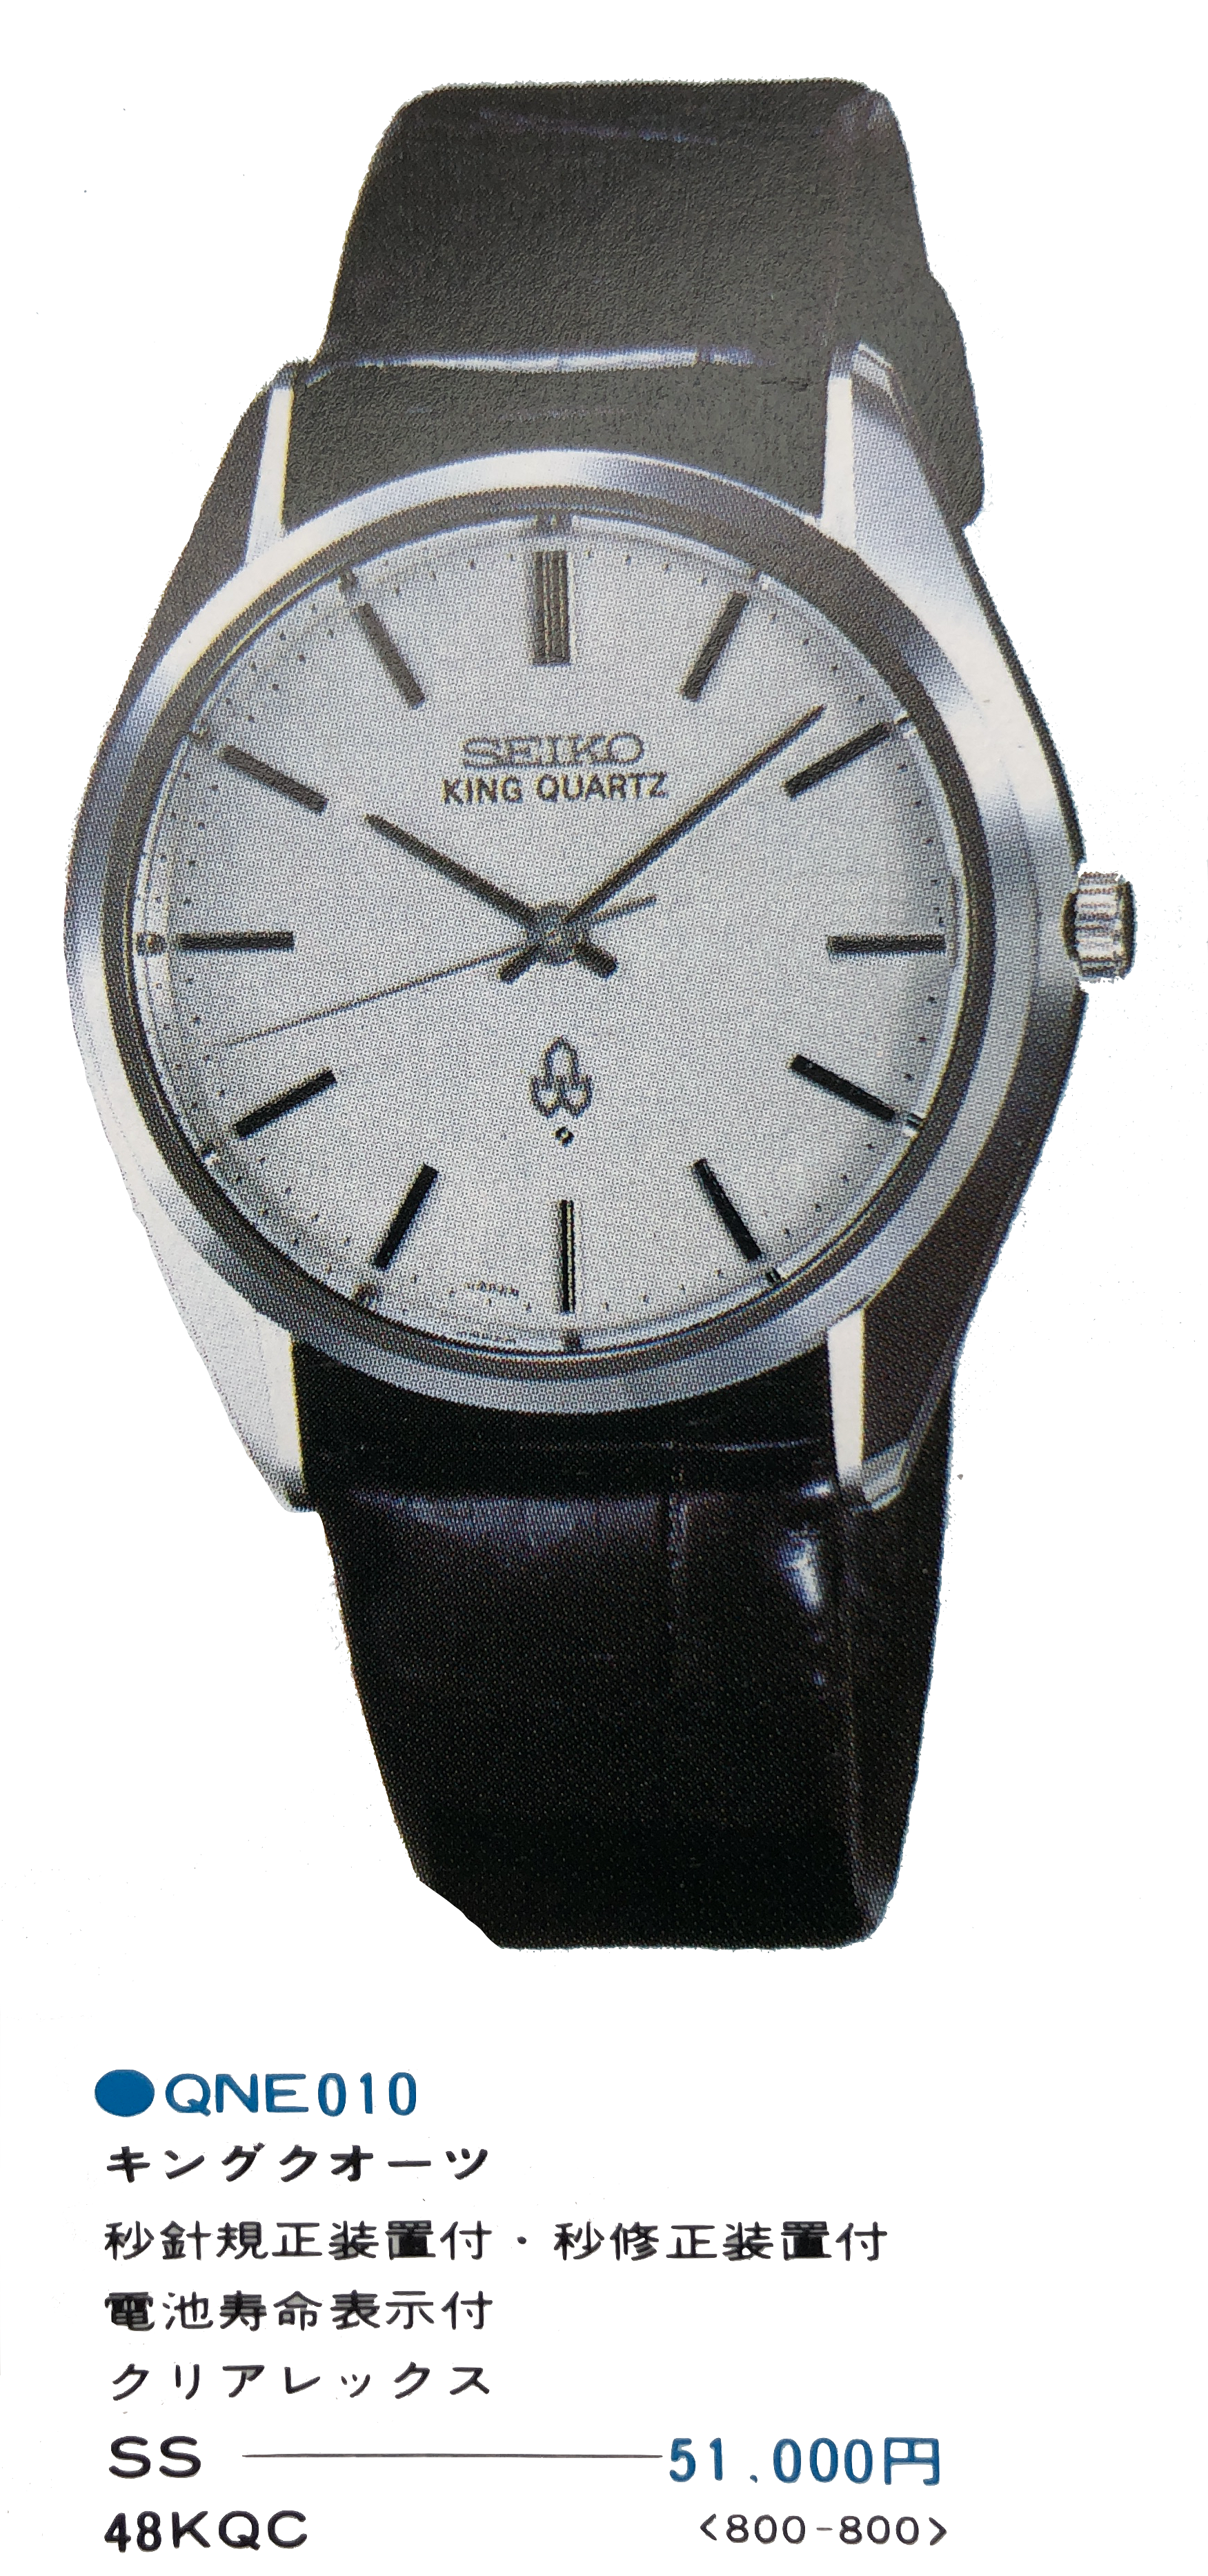 Seiko King Quartz 4821-8000